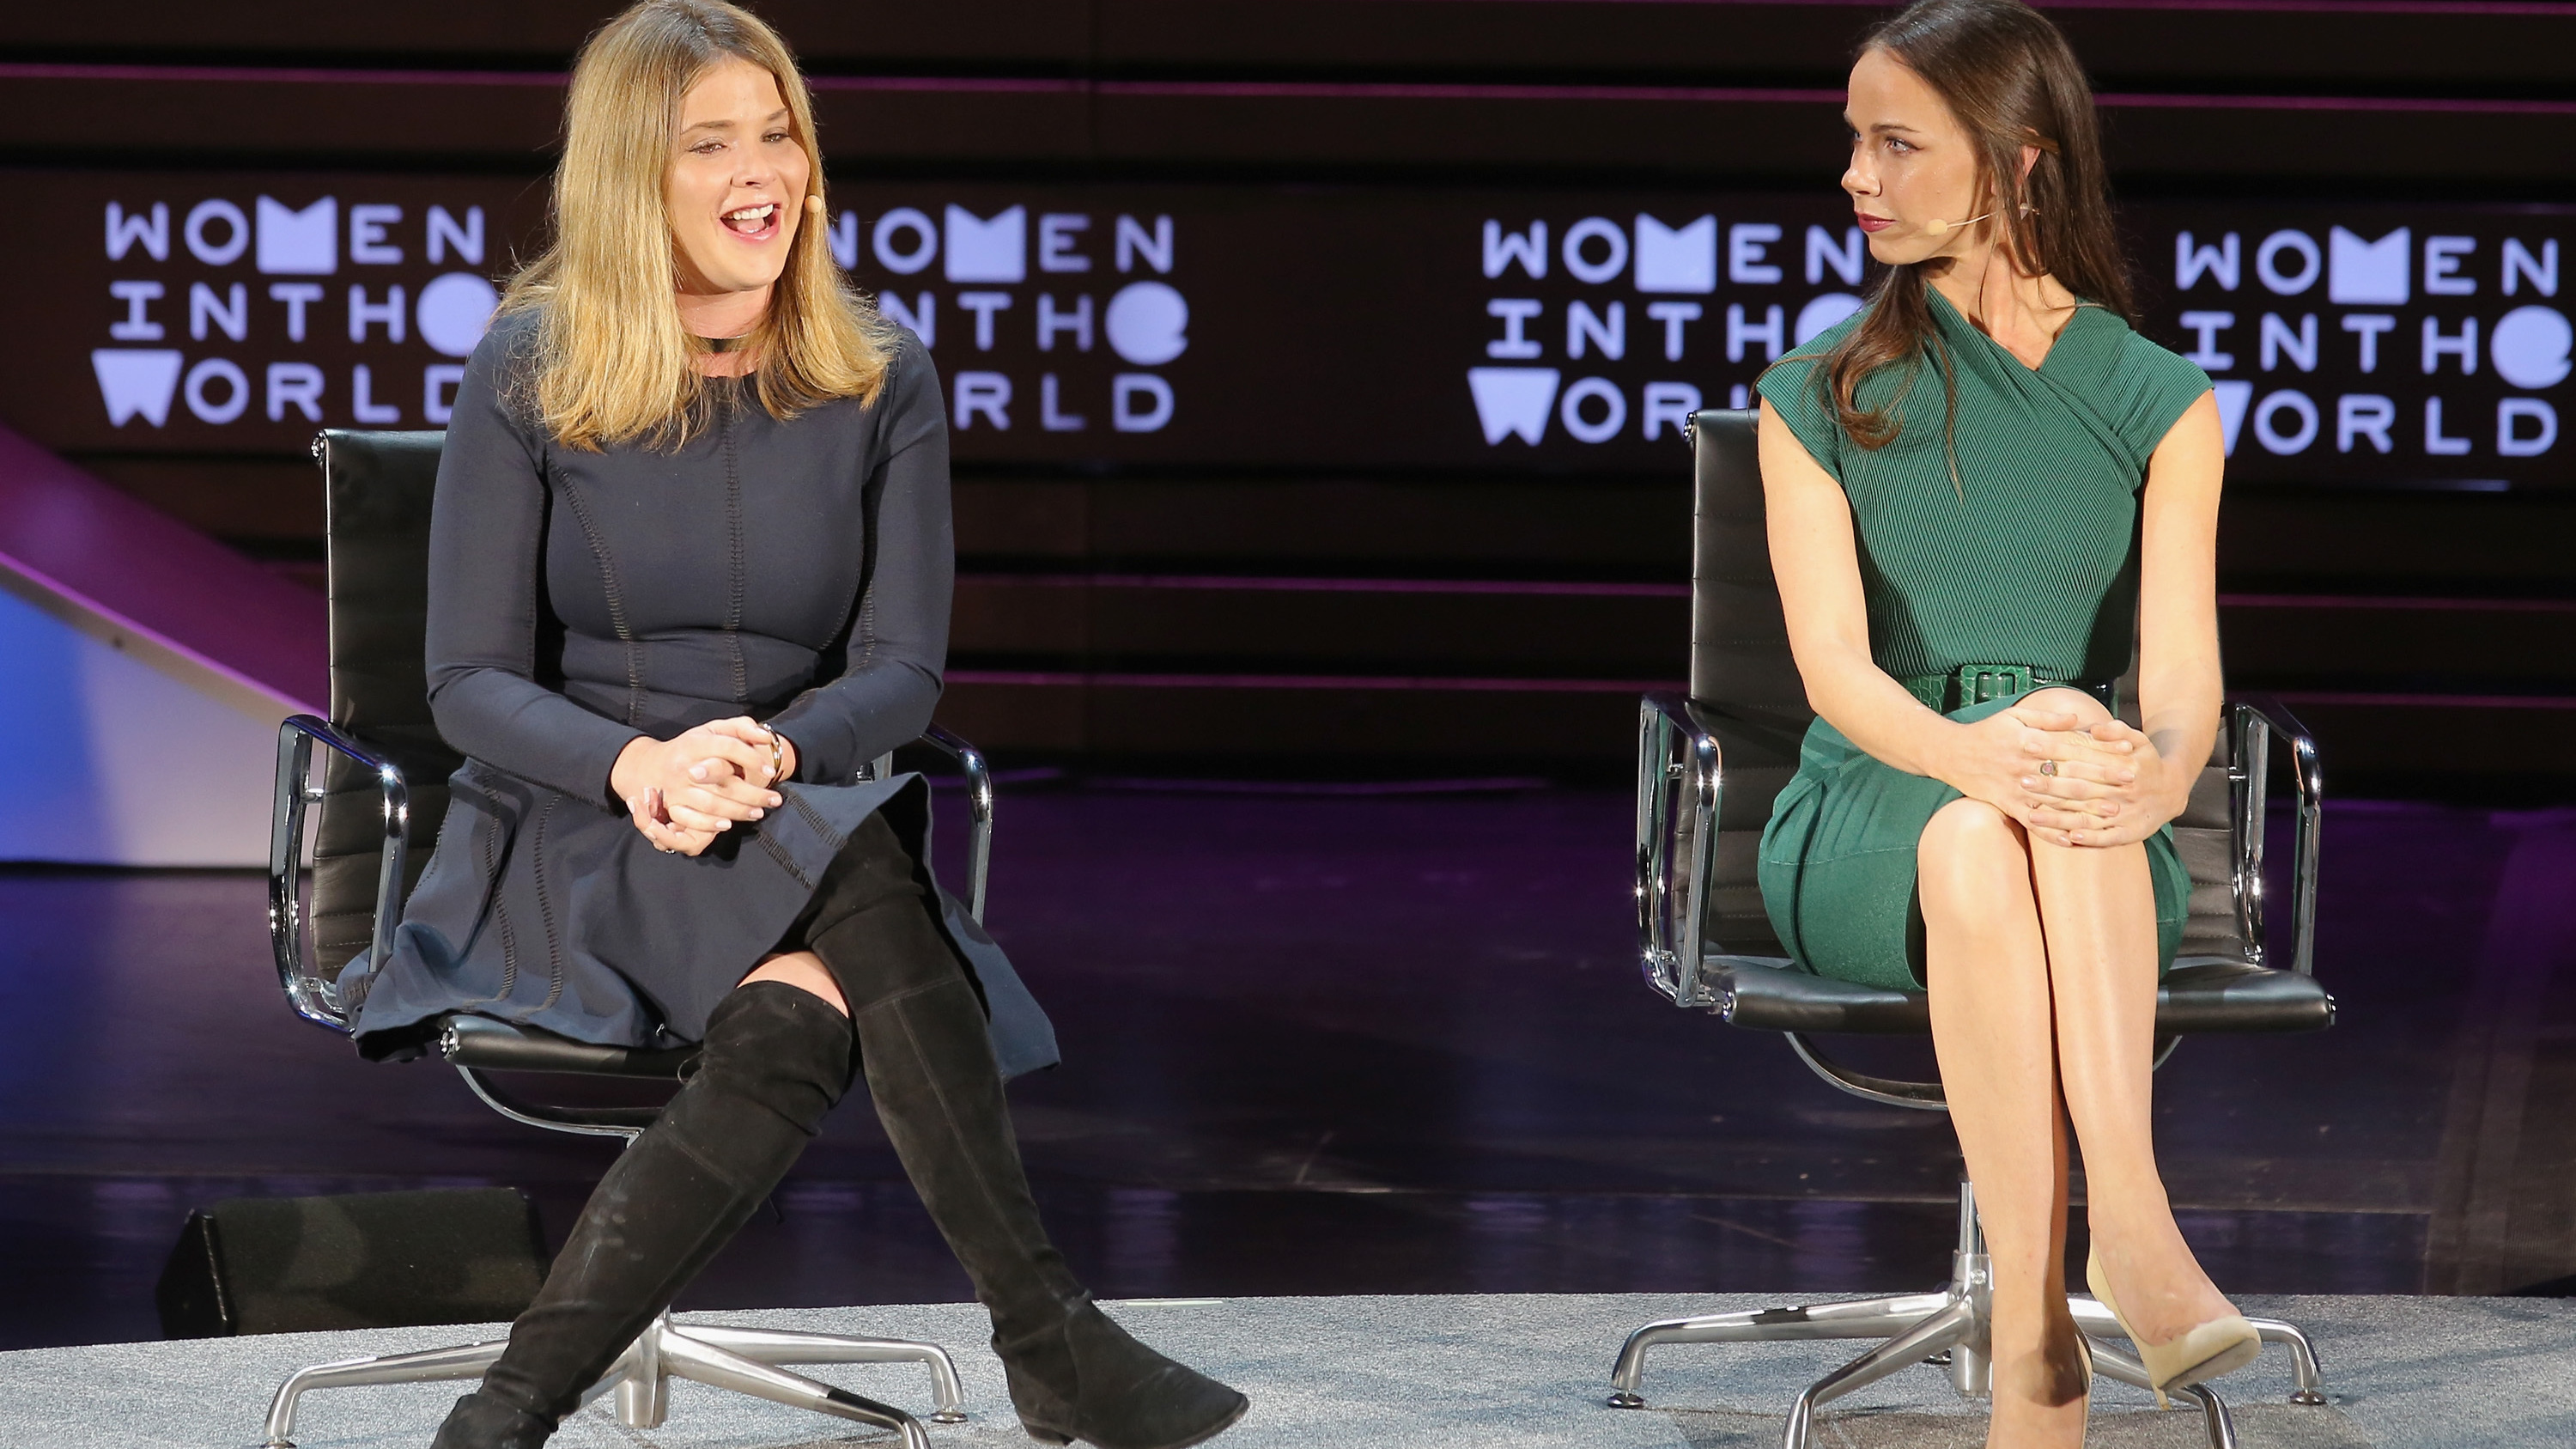 George H.W. Bush's granddaughters Jenna Bush Hager and Barbara Bush speak at the Women In The World Summit New York City in April 2016. (Jemal Countess/Getty Images)